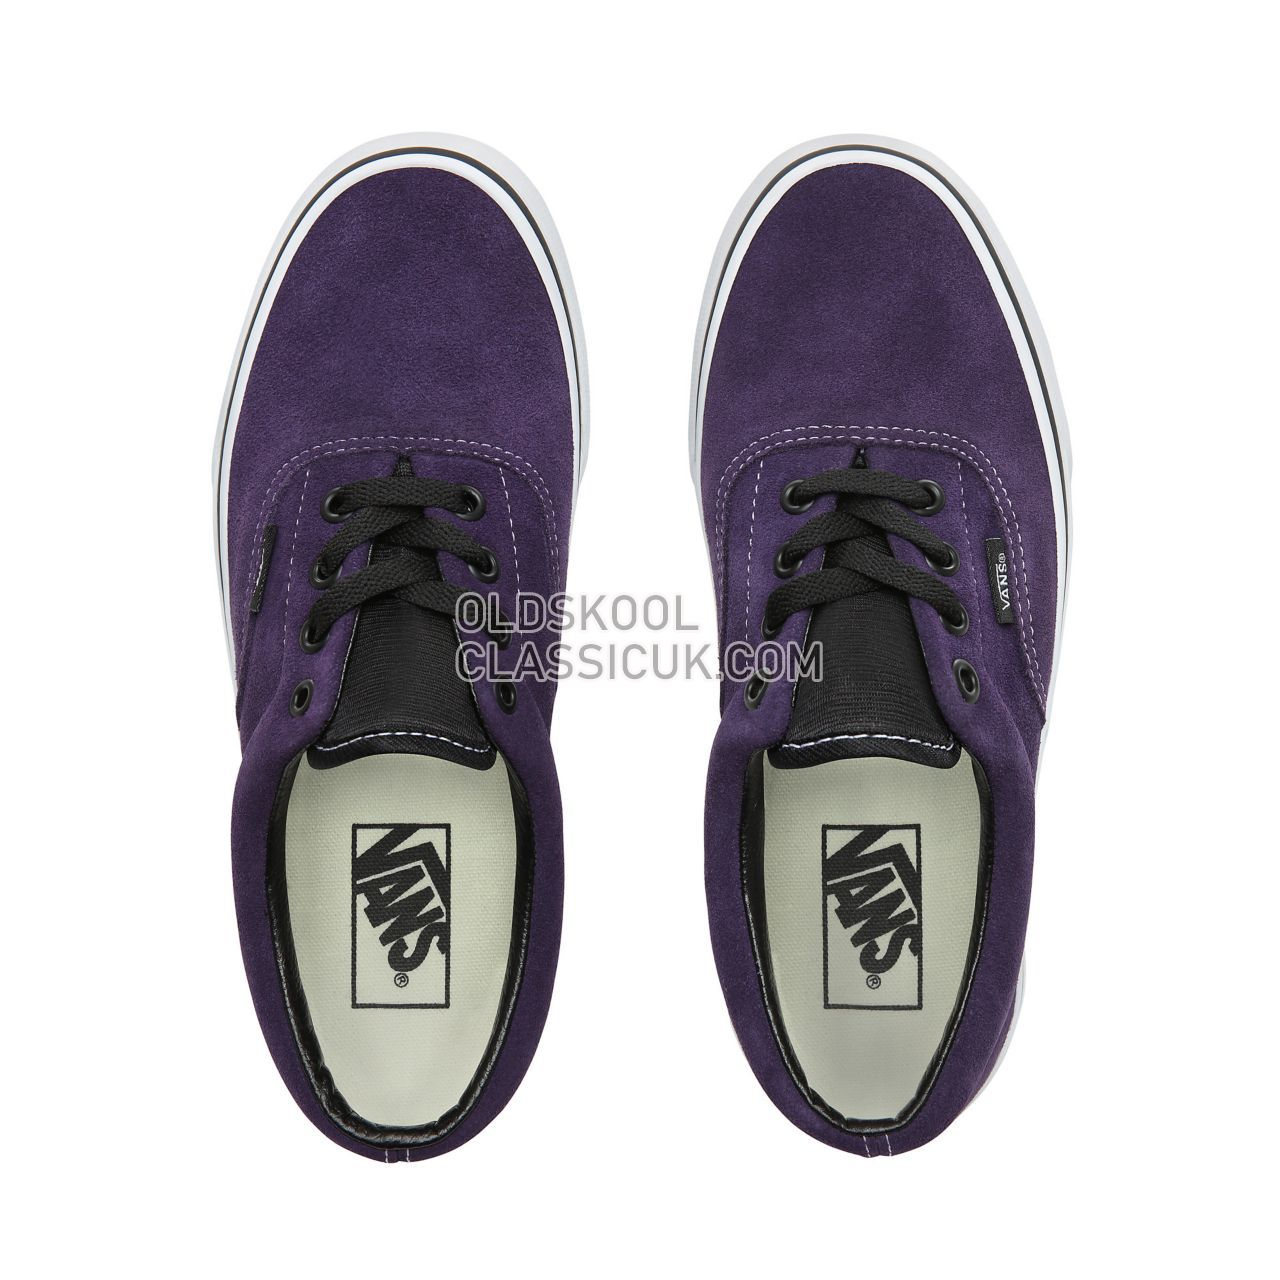 Vans California Native Era Sneakers Womens (California Native) Mysterioso/True White VN0A38FRVOM Shoes